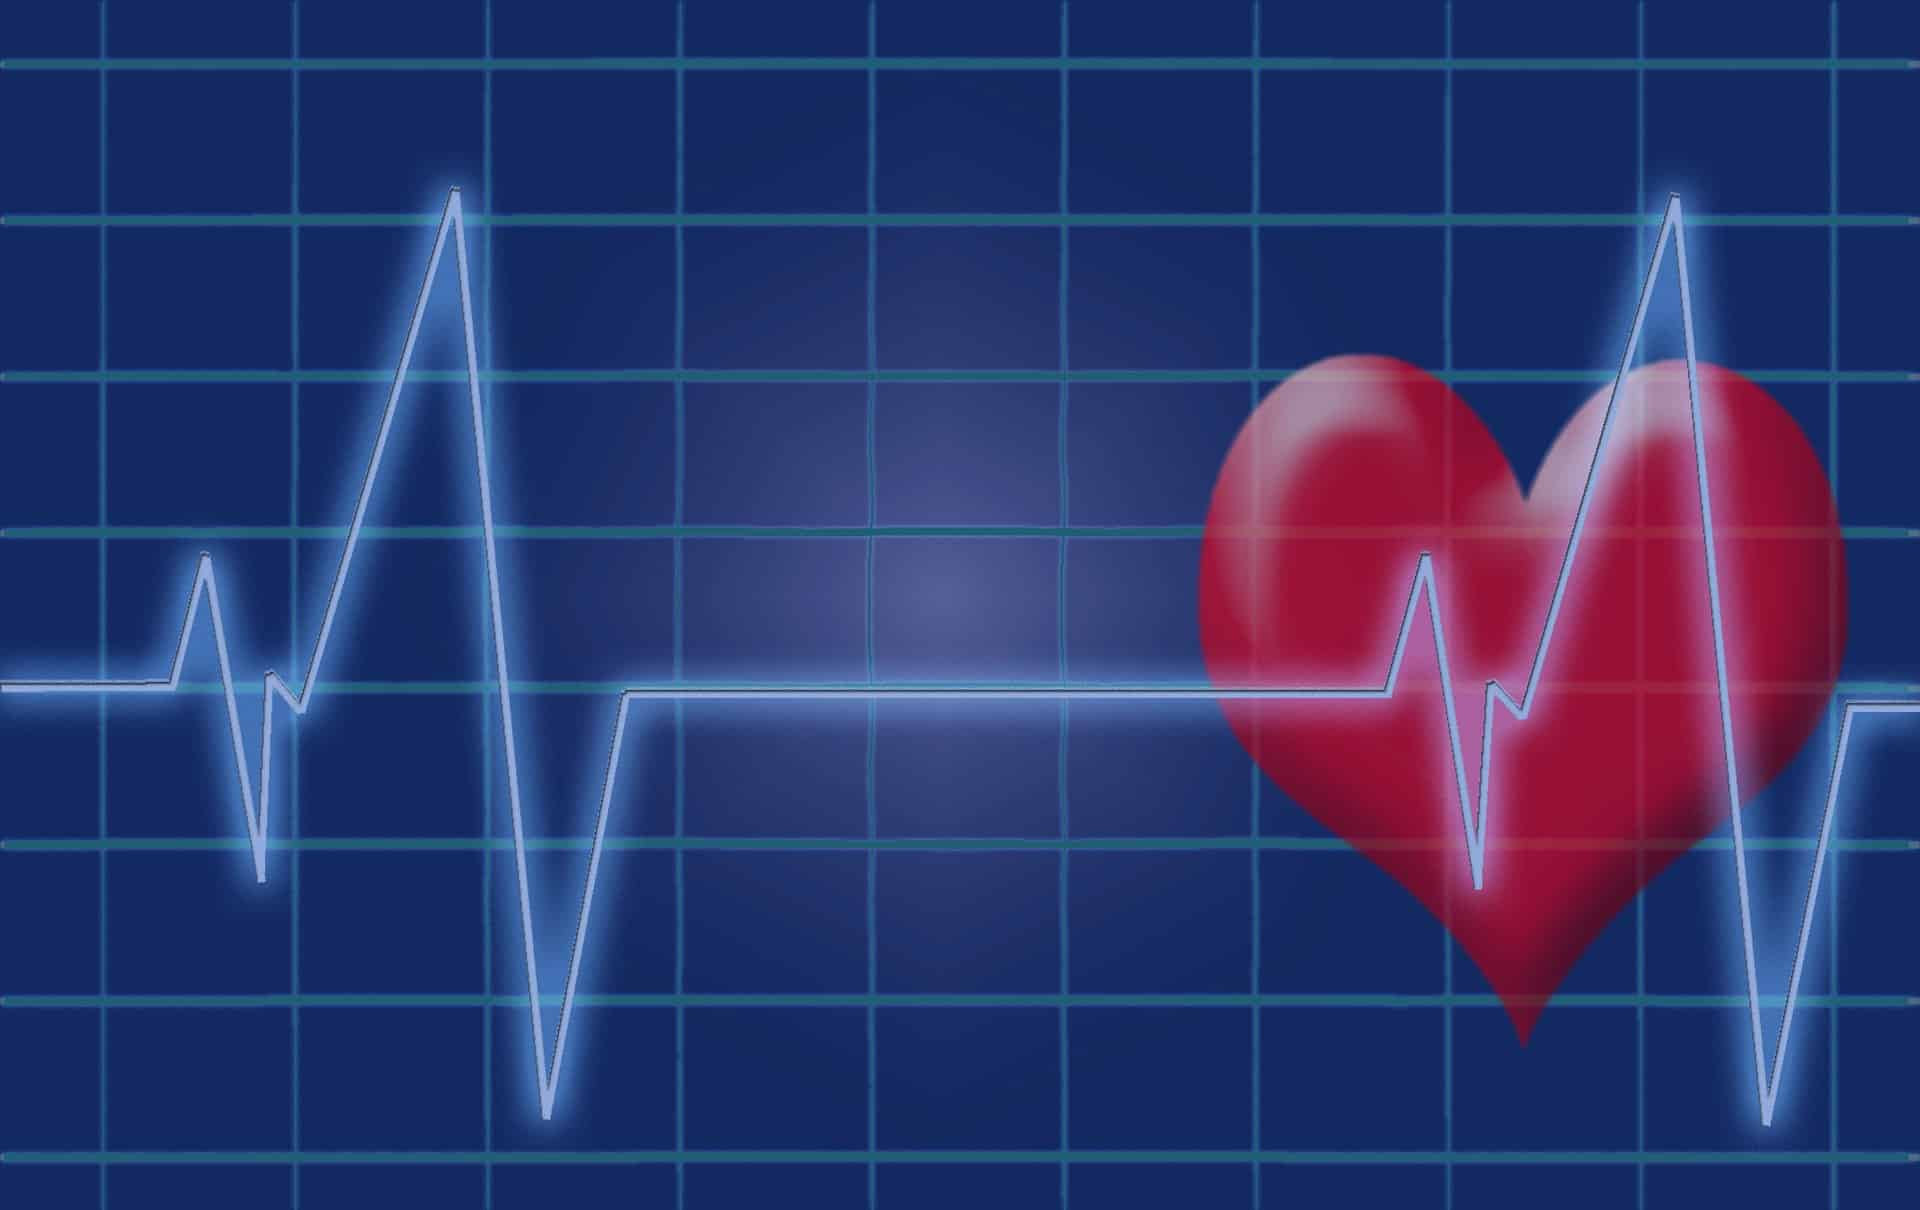 graphic of raising heart rate